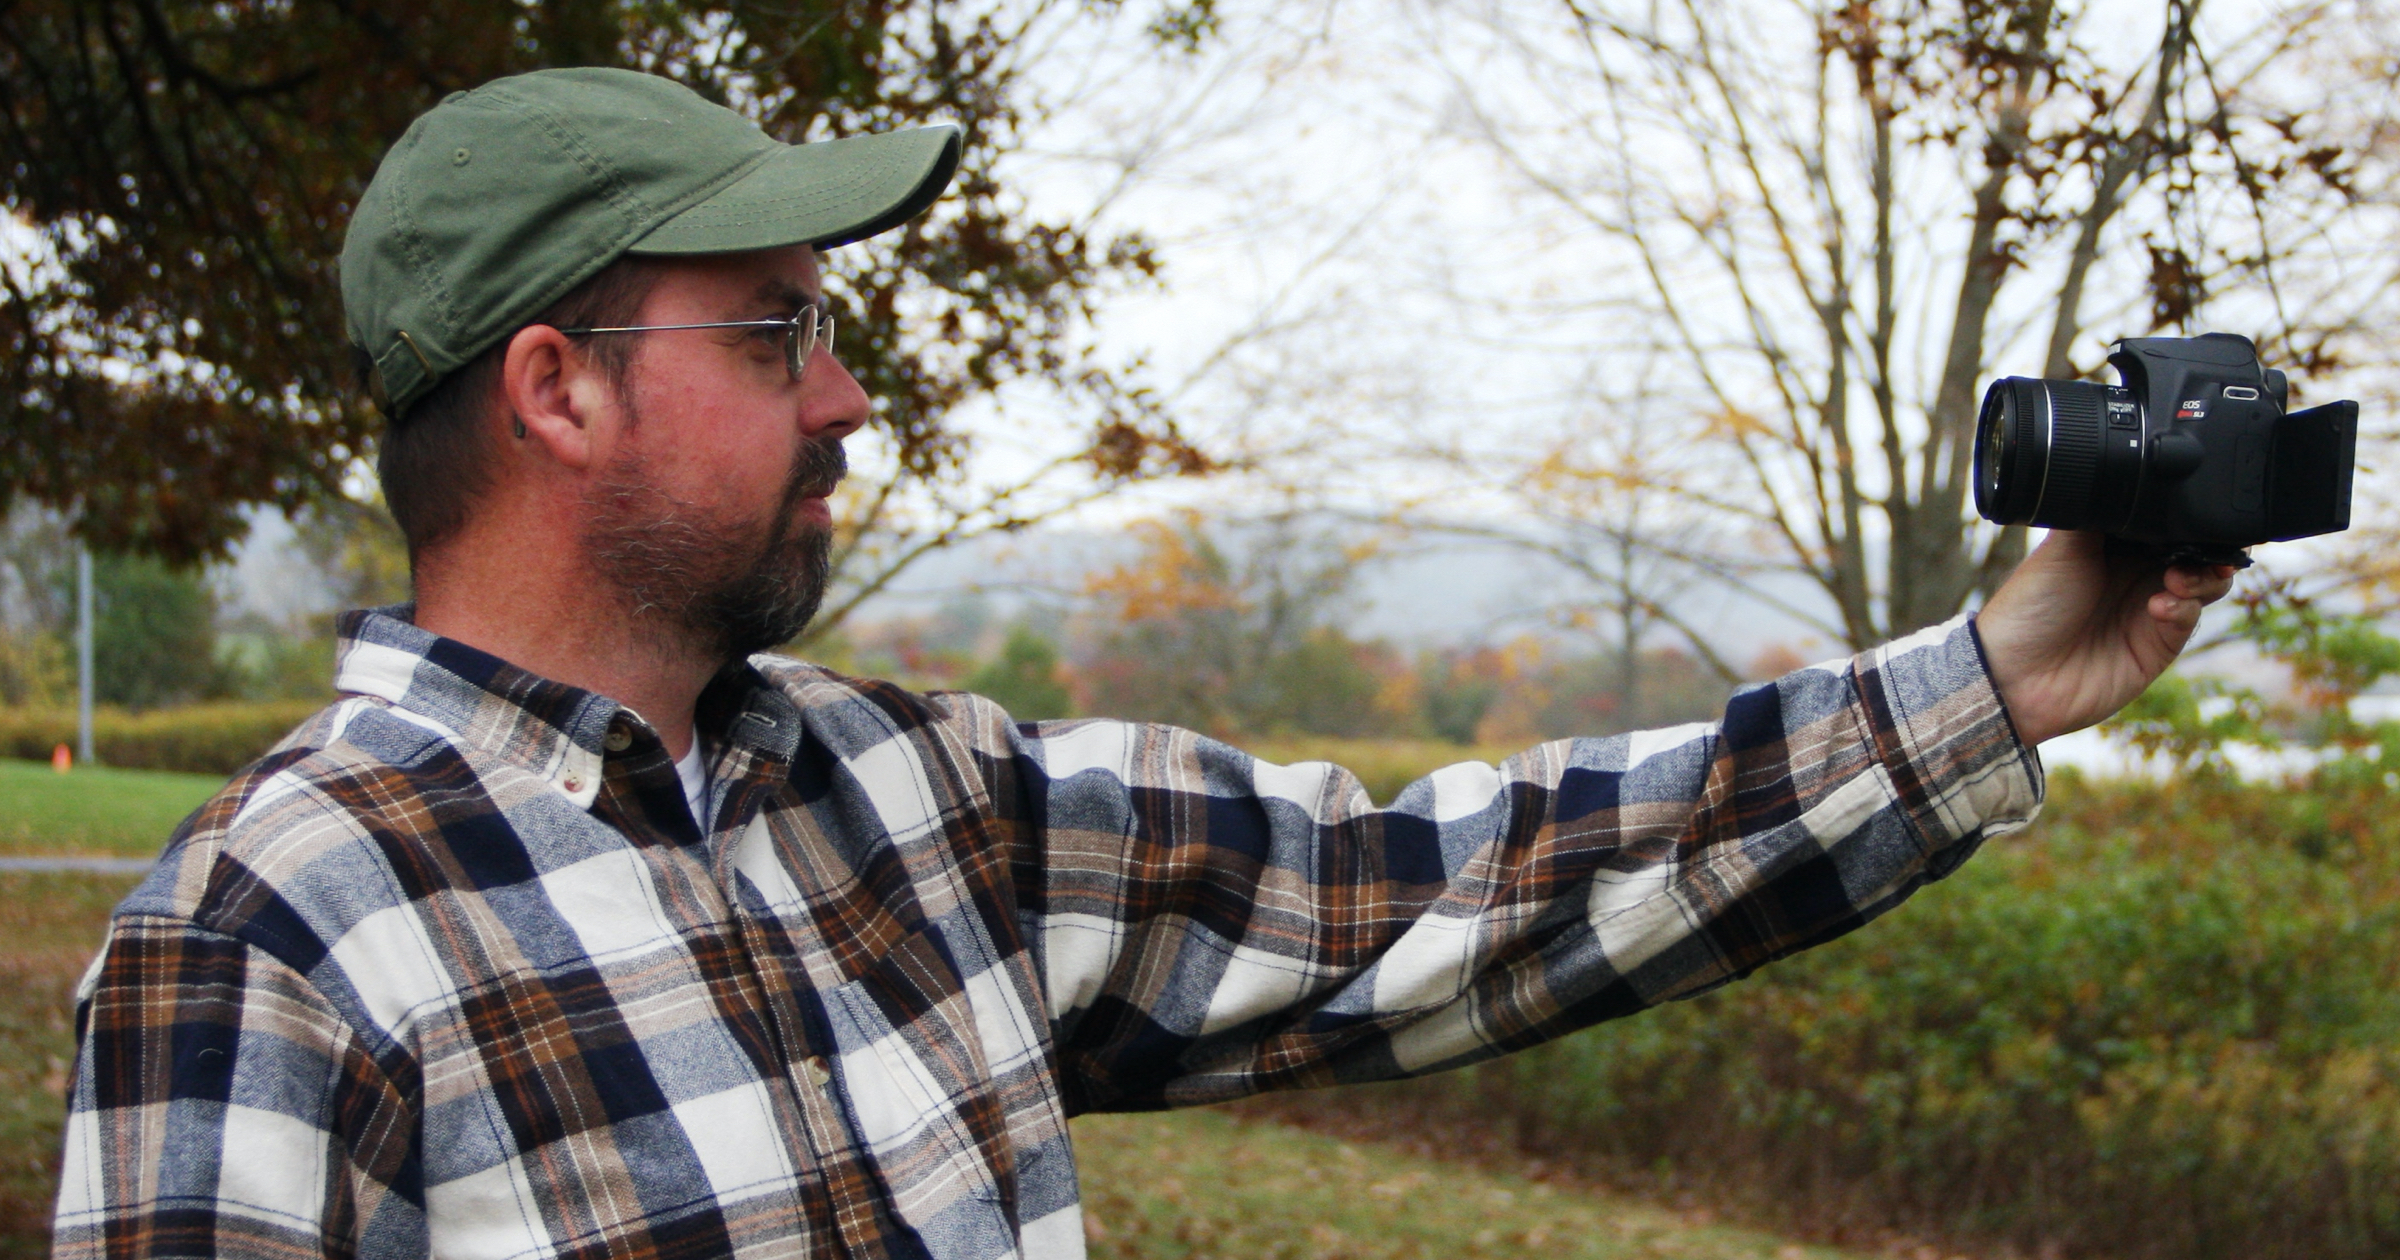 The Wandering Woodsman: Have camera, will travel